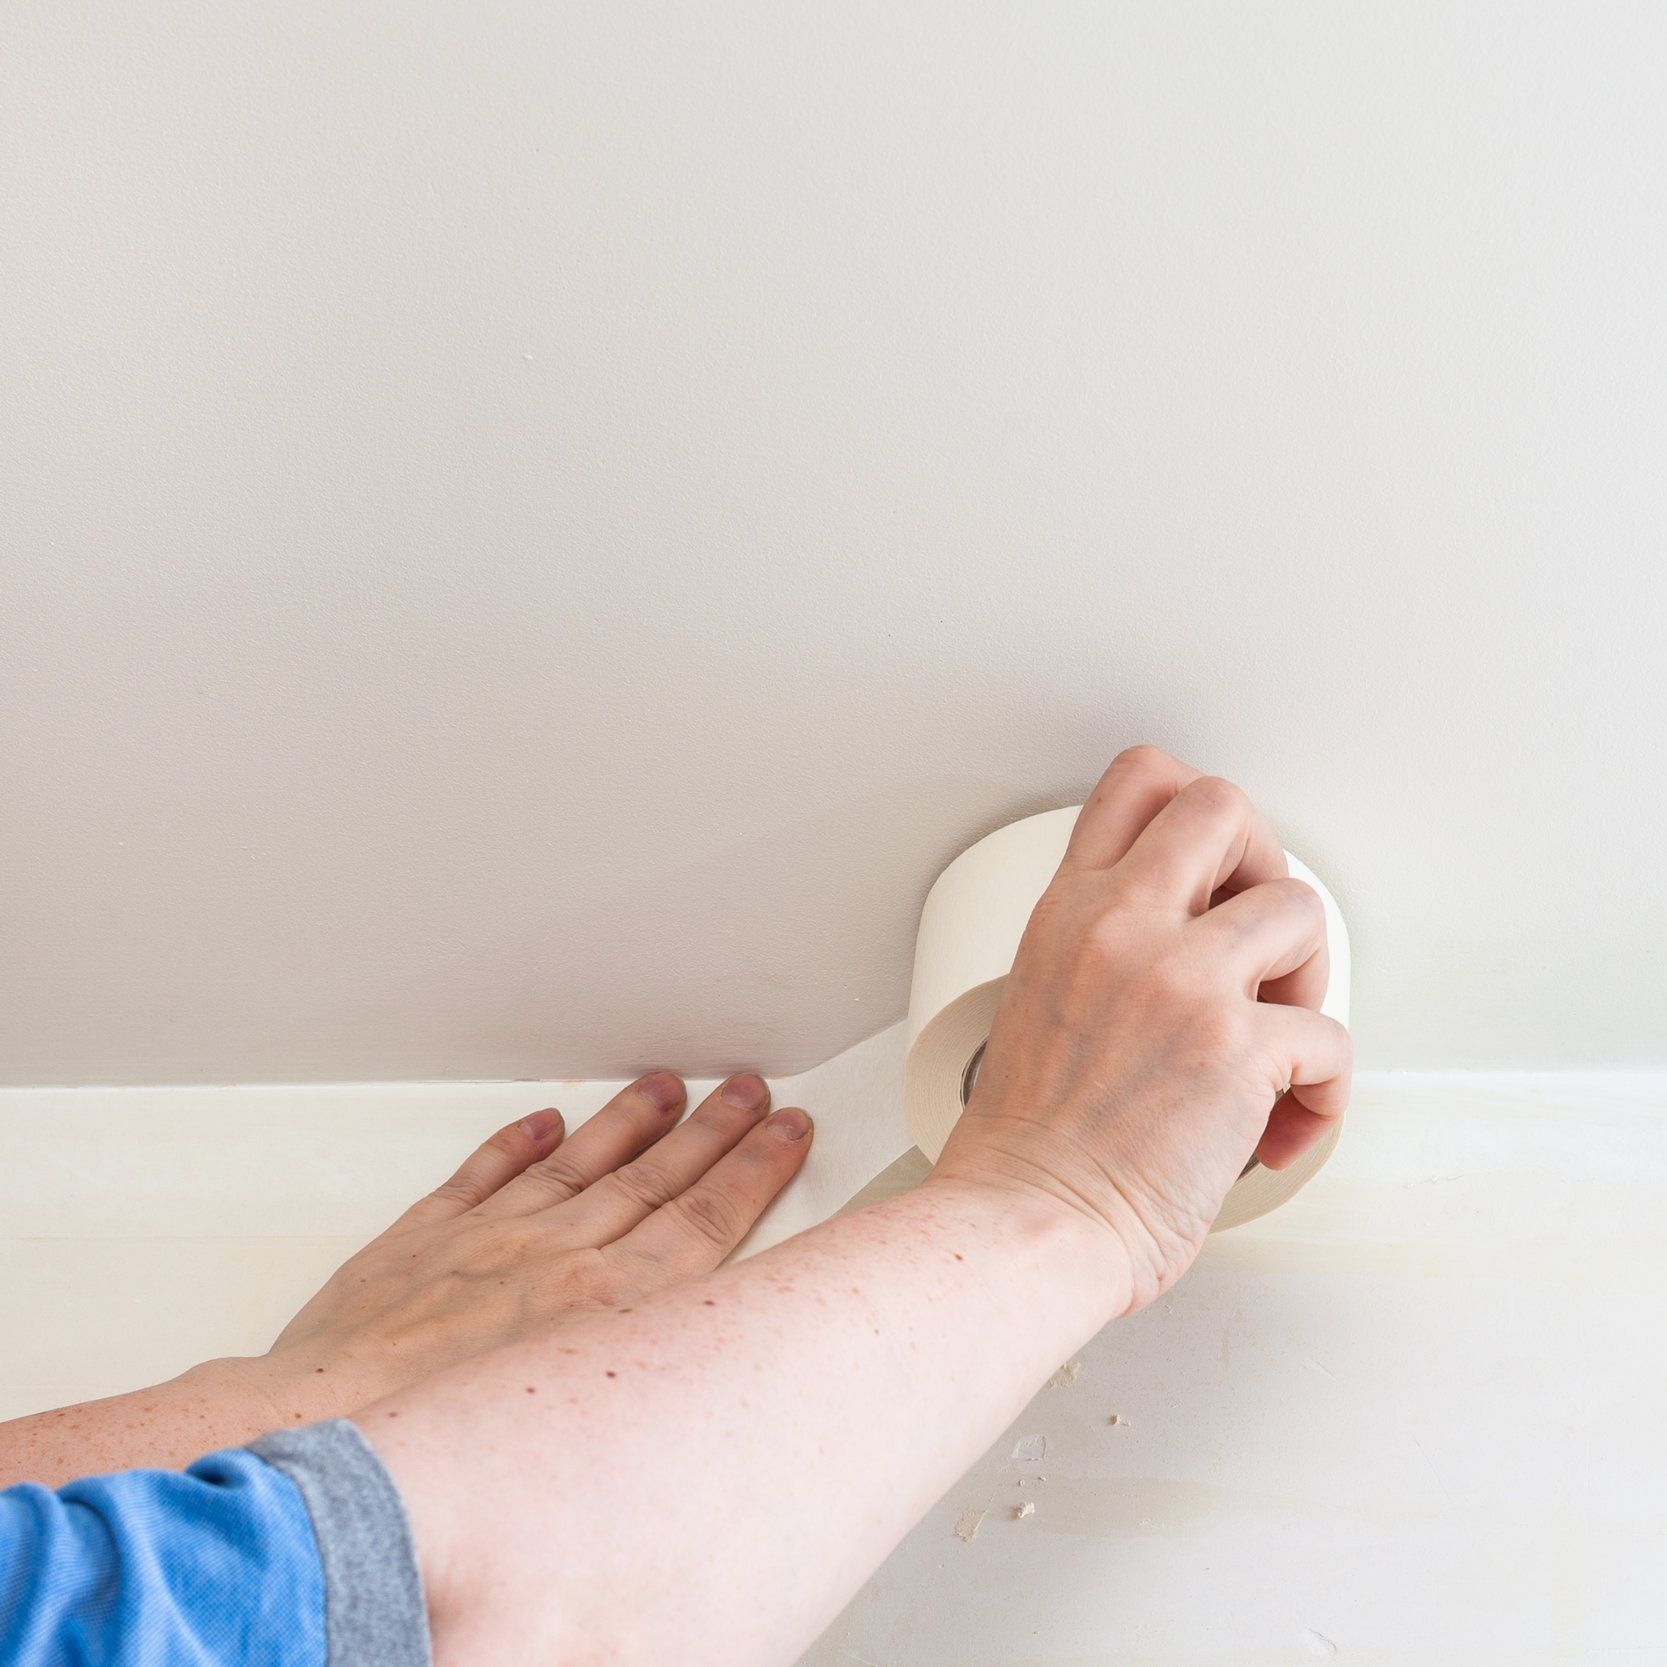 painter-fixes-sticky-tape-on-wall-before-painting-P4XN9CR.jpg